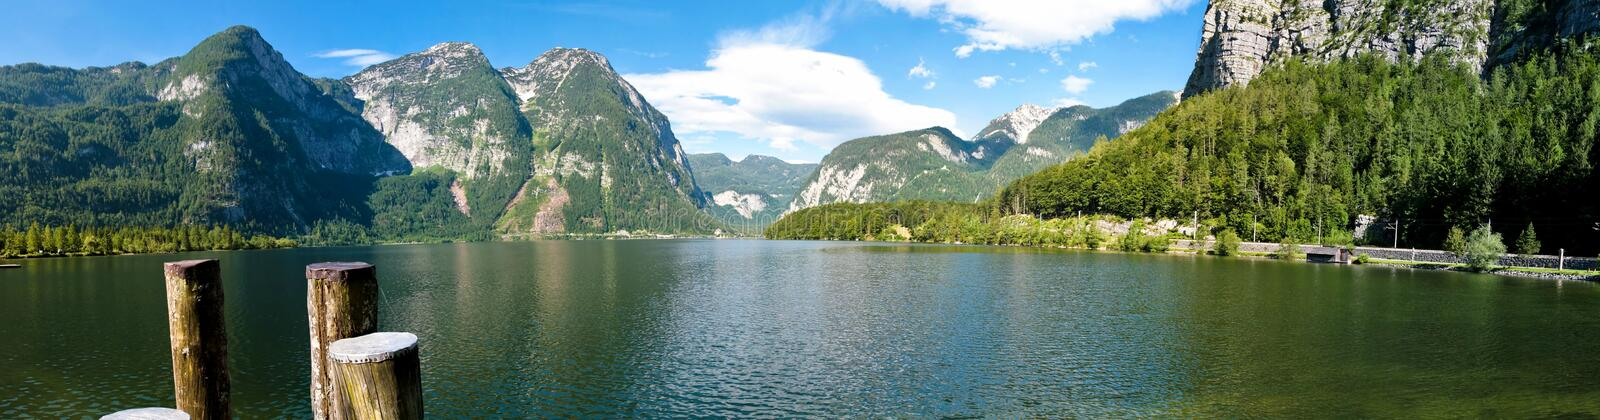 Download Hallstatt lake panorama stock photo. Image of forest - 10024006